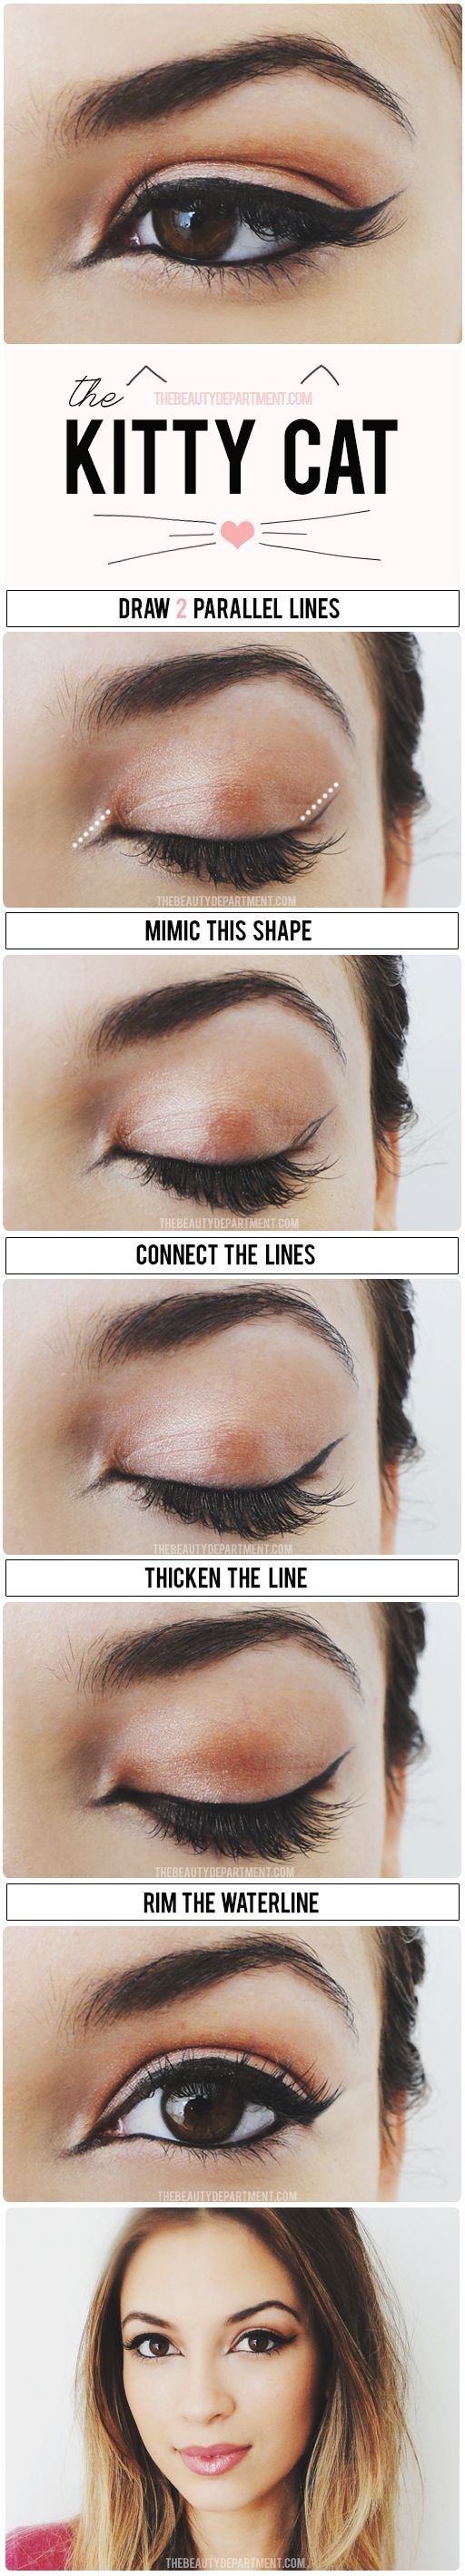 thebeautydepartment.com-kitty-cat-eye.jpg 512×2.838 pixels: Catey, Cats Eyes Makeup, Kitty Cats, Cats Eyes Tutorials, Make Up, Eyeliner, Cat Eyes, Eyes Makeup Tutorials, Beauty